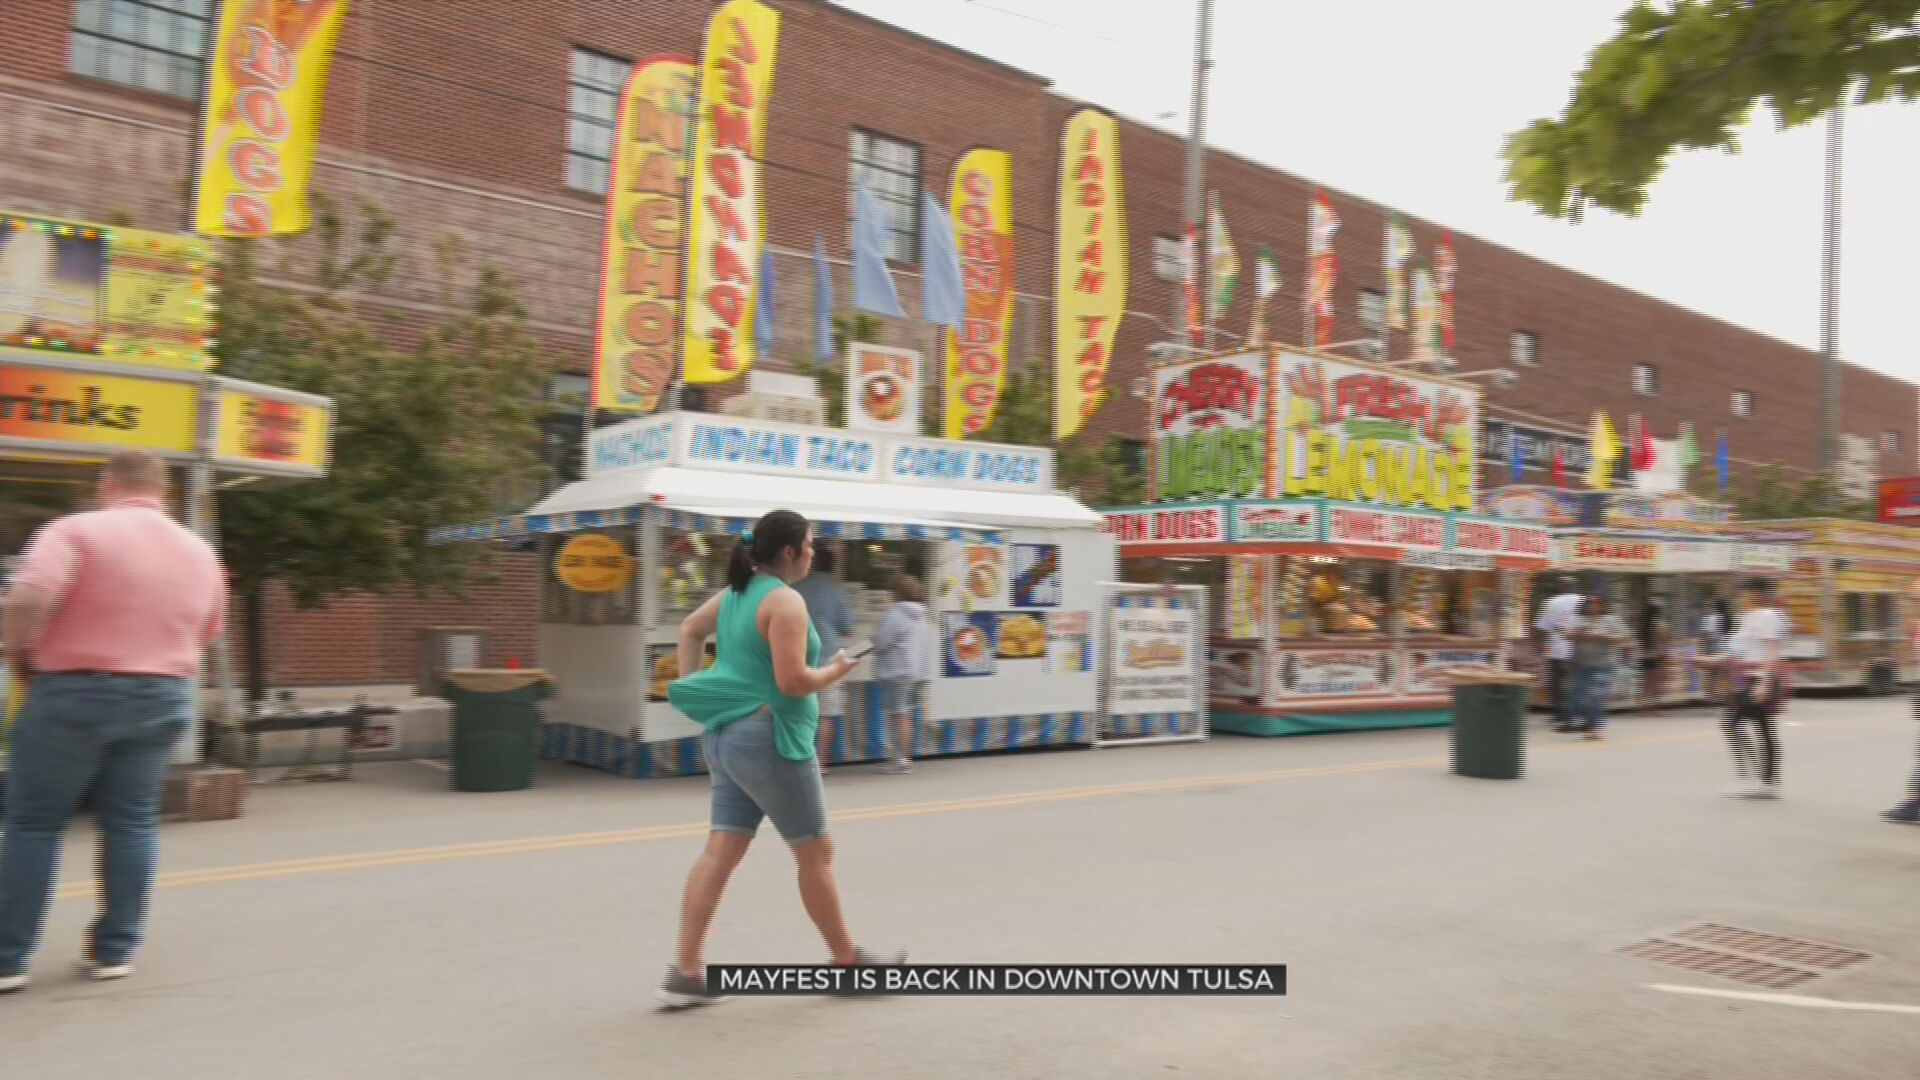 Mayfest Brings Food, Music & Fun To Downtown Tulsa